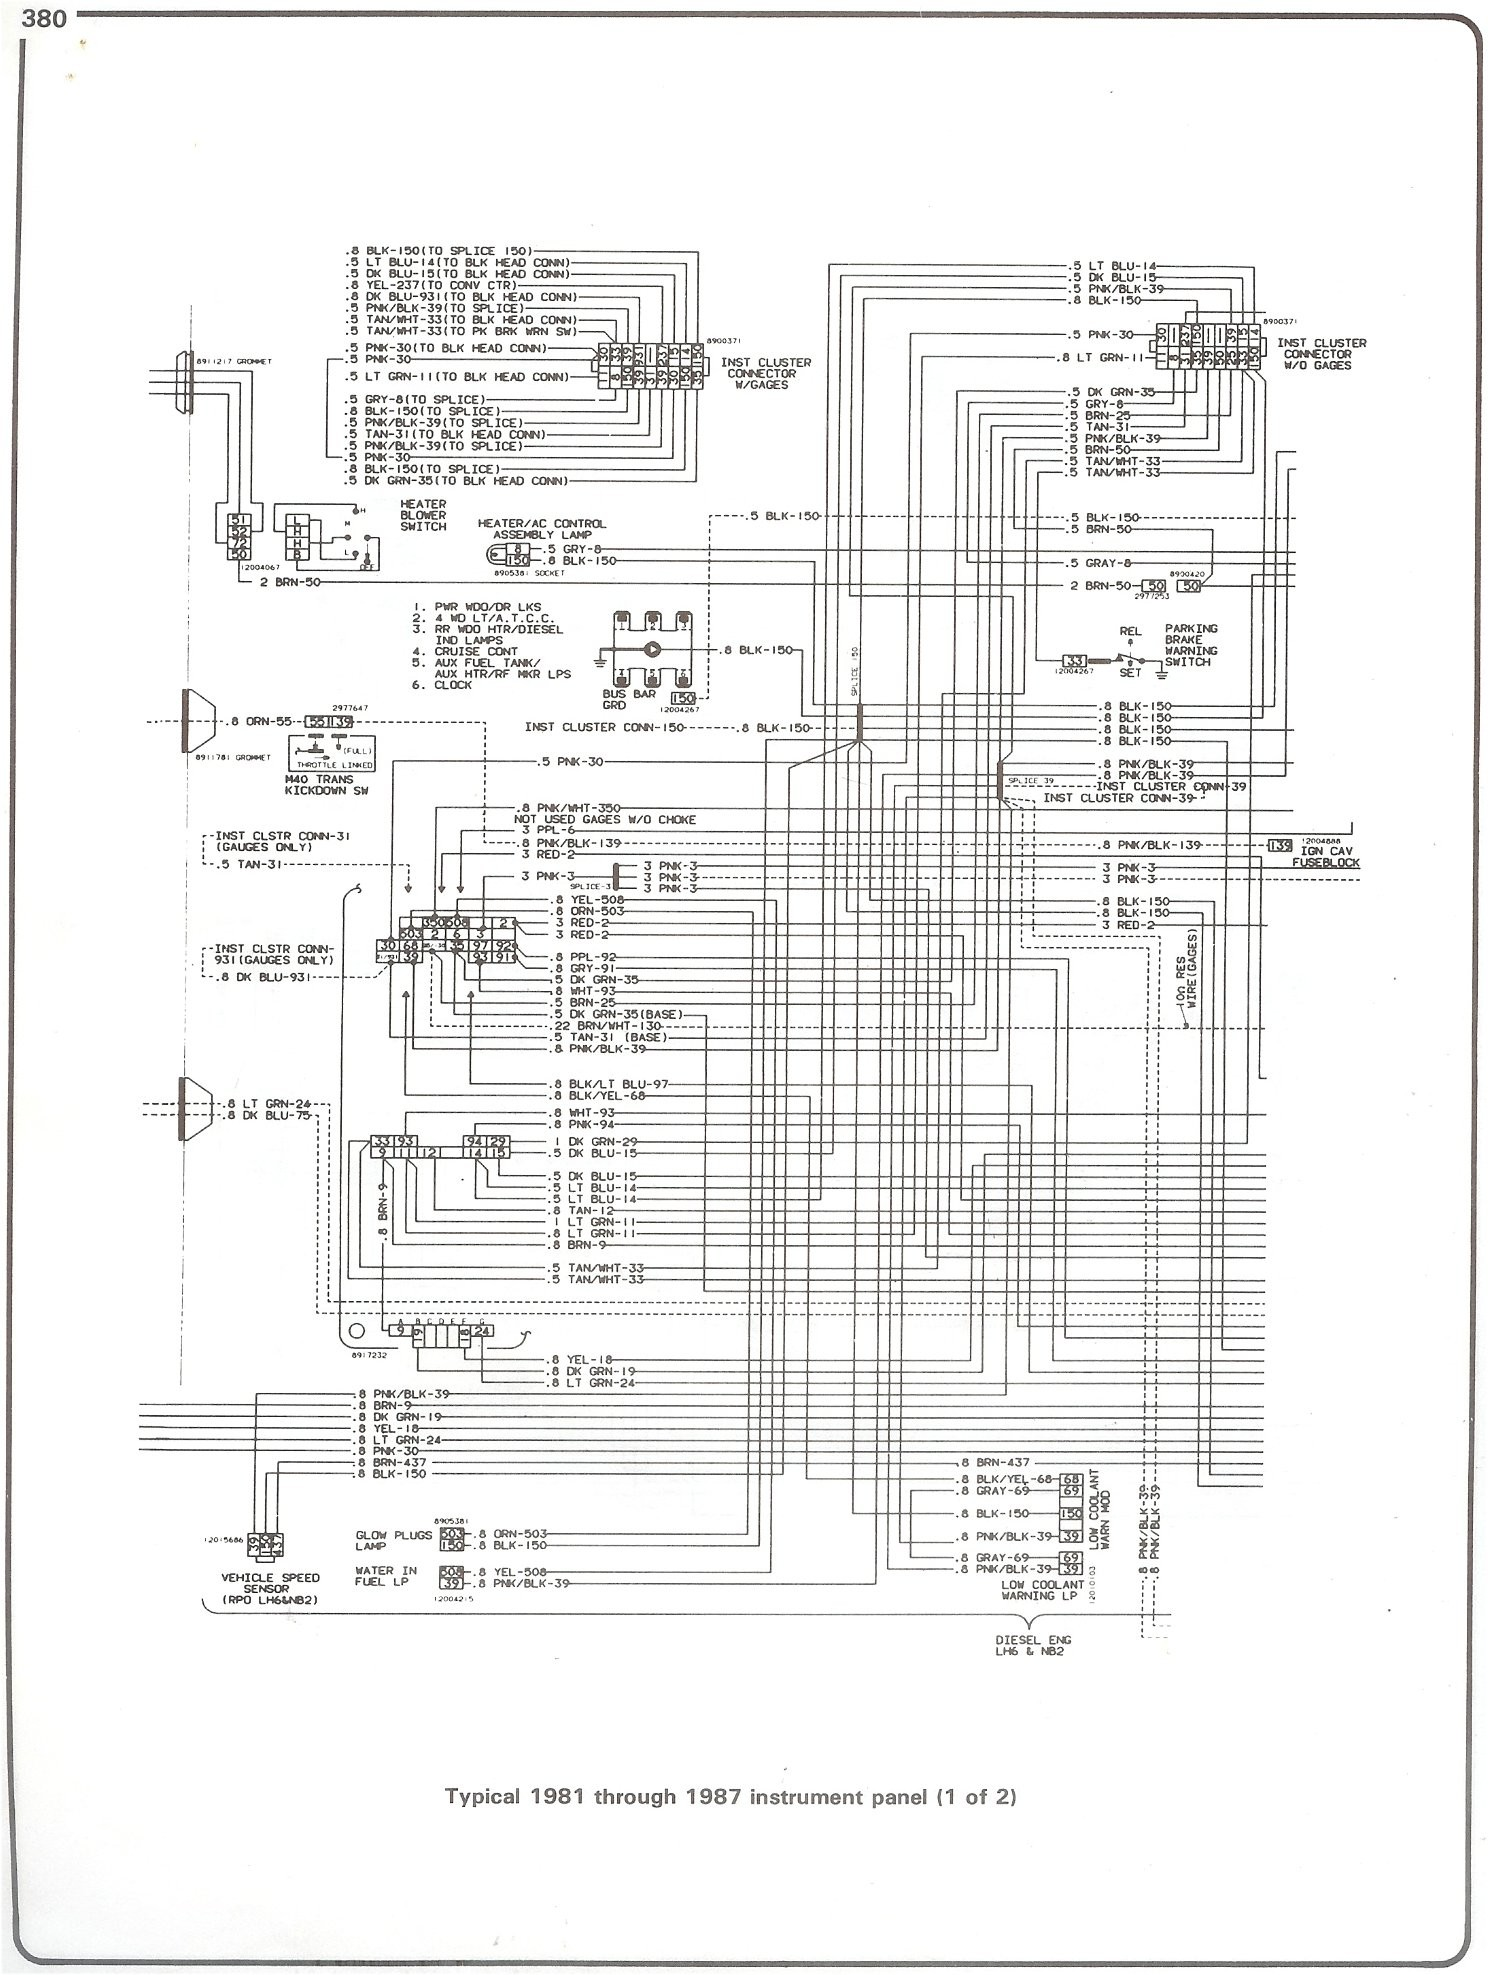 1978 gmc truck electrical wiring diagrams wiring diagram features 1978 gmc truck electrical wiring diagrams wiring diagram host 1978 gmc truck electrical wiring diagrams